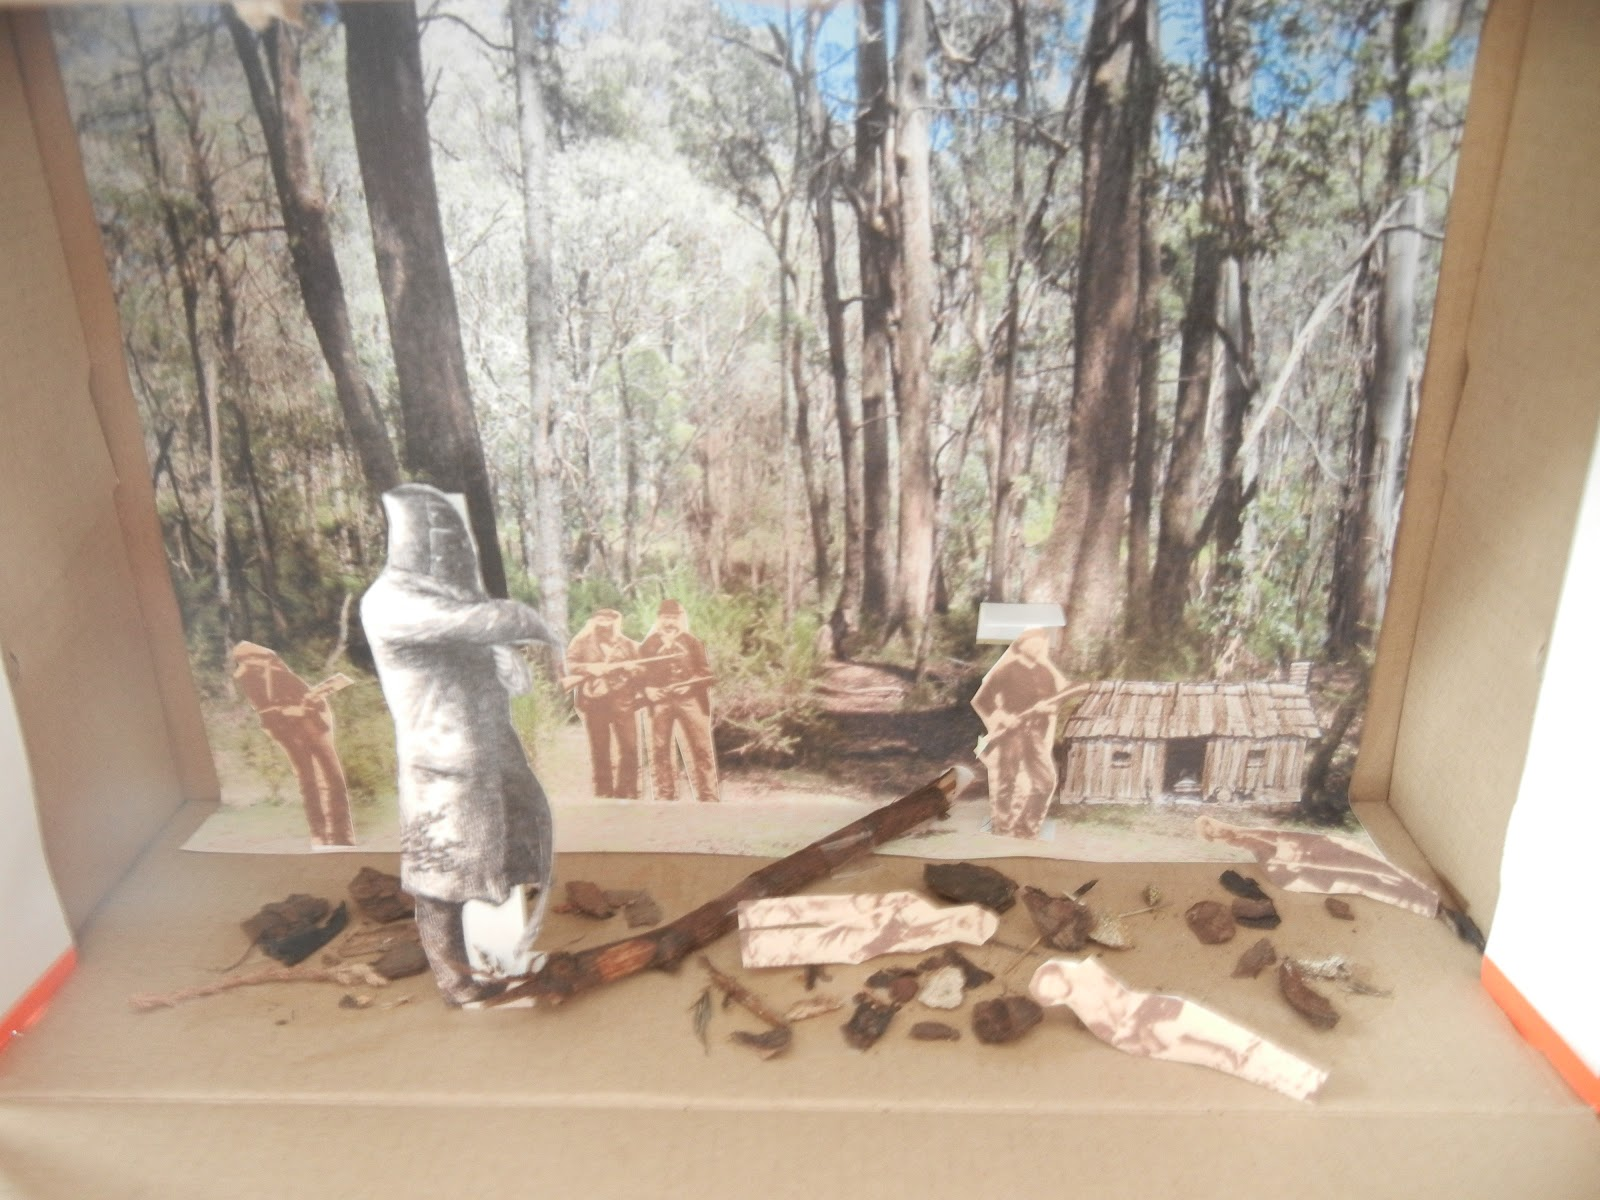 Kids Diorama With Details: Year 5 / Grade 5 Class Activities And News: History